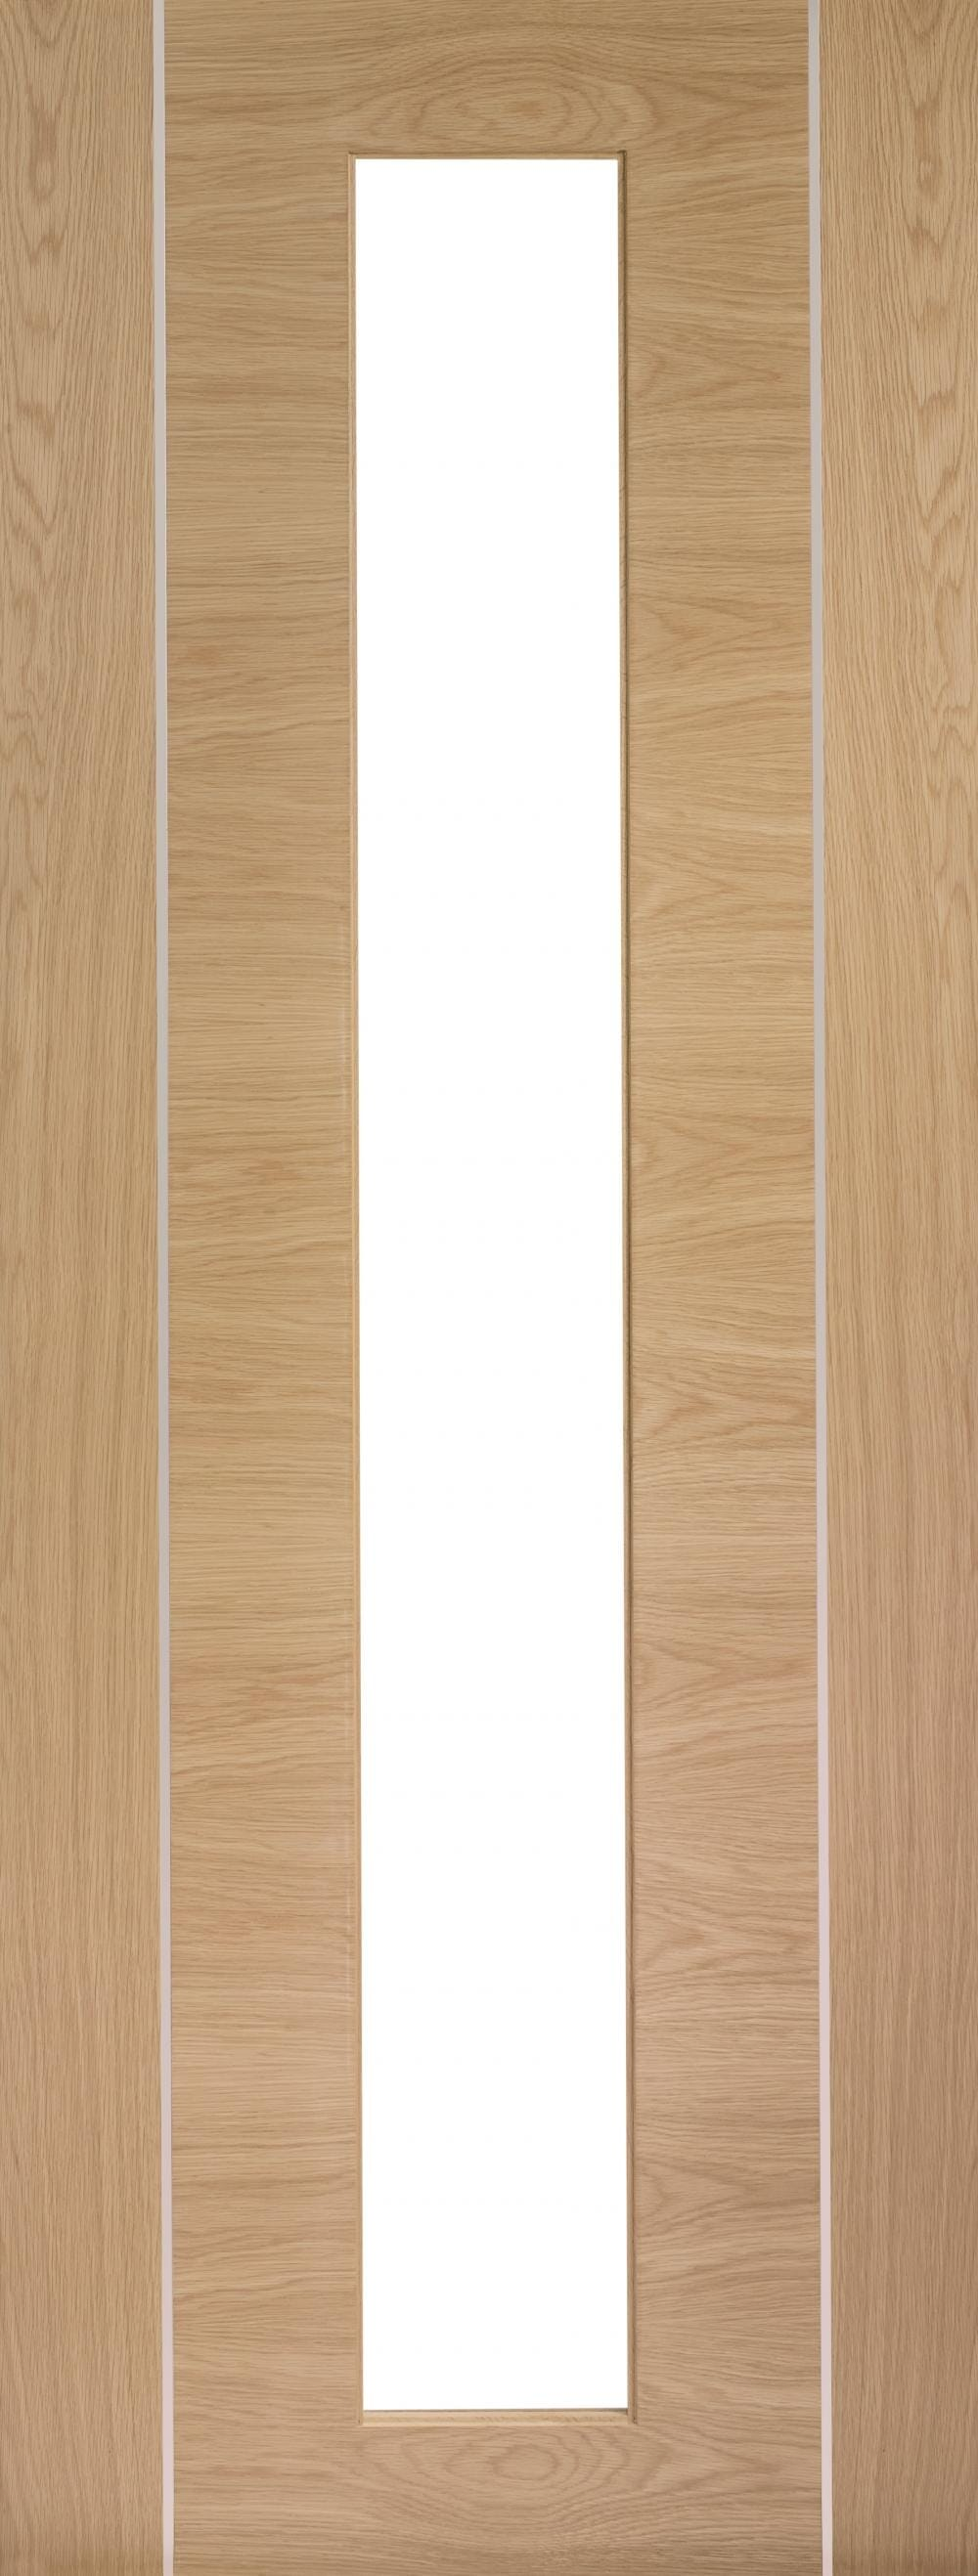 Forli Oak - Prefinished (alum Inlay) Clear Glass Image